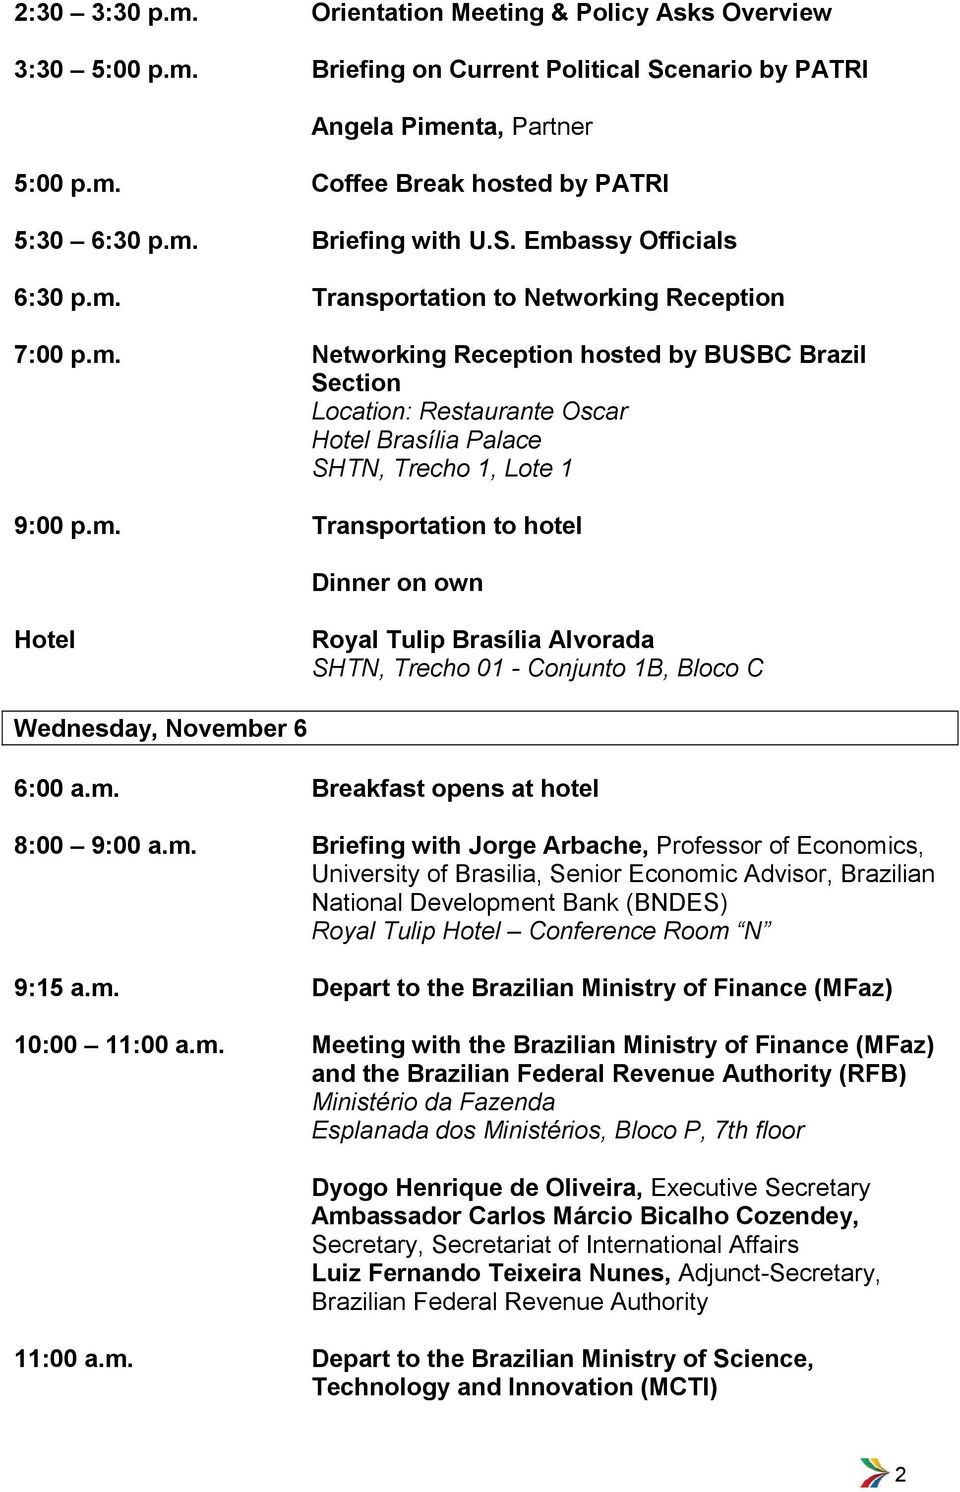 m. Transportation to hotel Dinner on own SHTN, Trecho 01 - Conjunto 1B, Bloco C Wednesday, November 6 8:00 9:00 a.m. Briefing with Jorge Arbache, Professor of Economics, University of Brasilia, Senior Economic Advisor, Brazilian National Development Bank (BNDES) Royal Tulip Conference Room N 9:15 a.